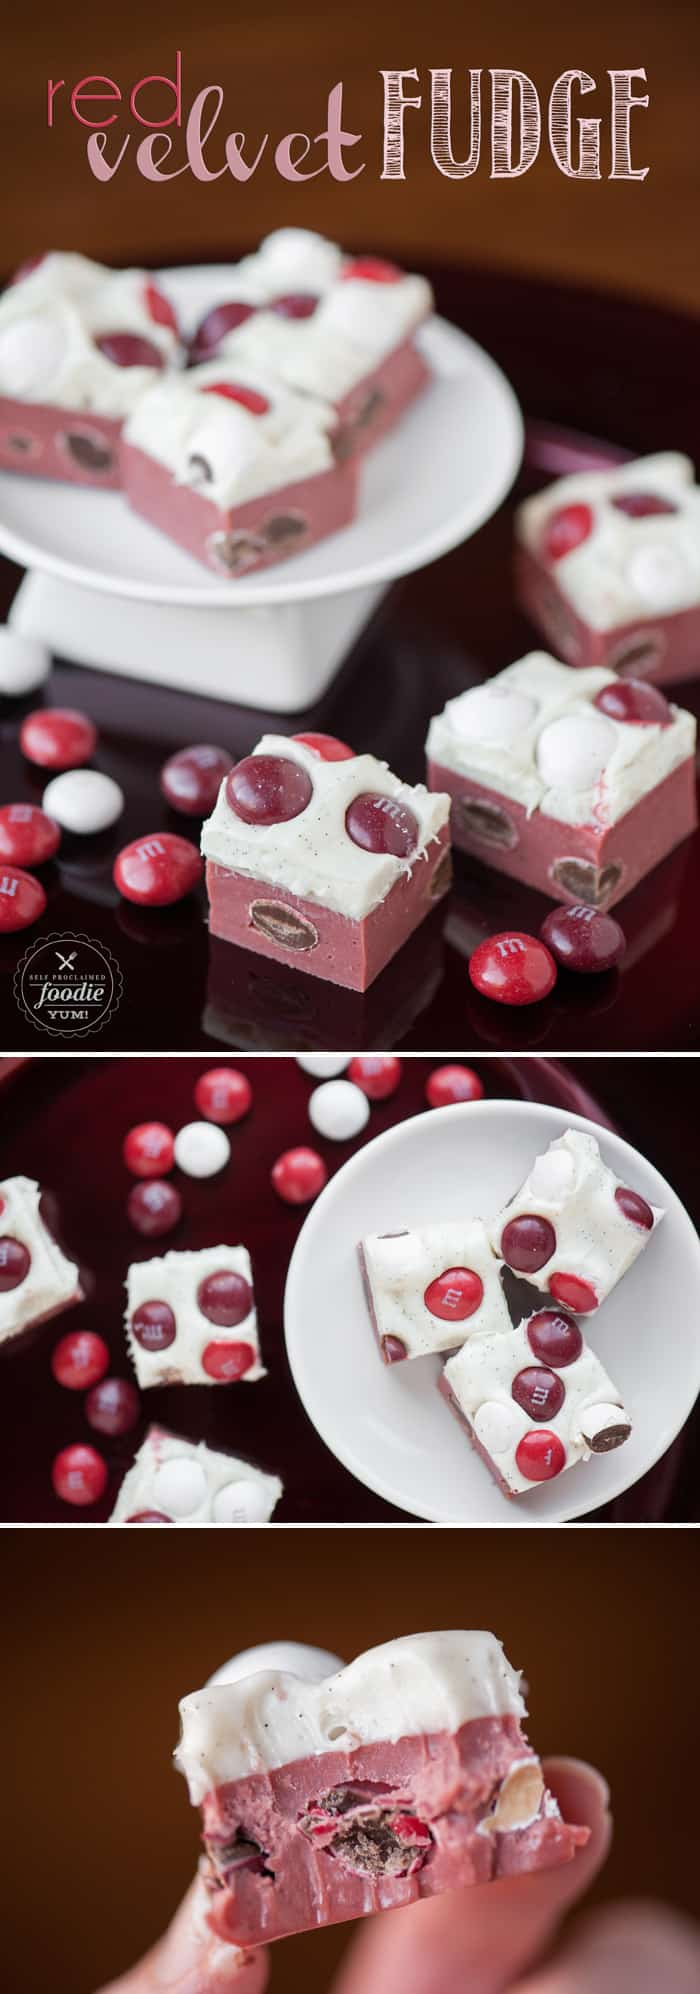 This two bite mouthwatering M&M's Red Velvet Fudge is the perfect Valentine's sweet treat to share with friends and family.